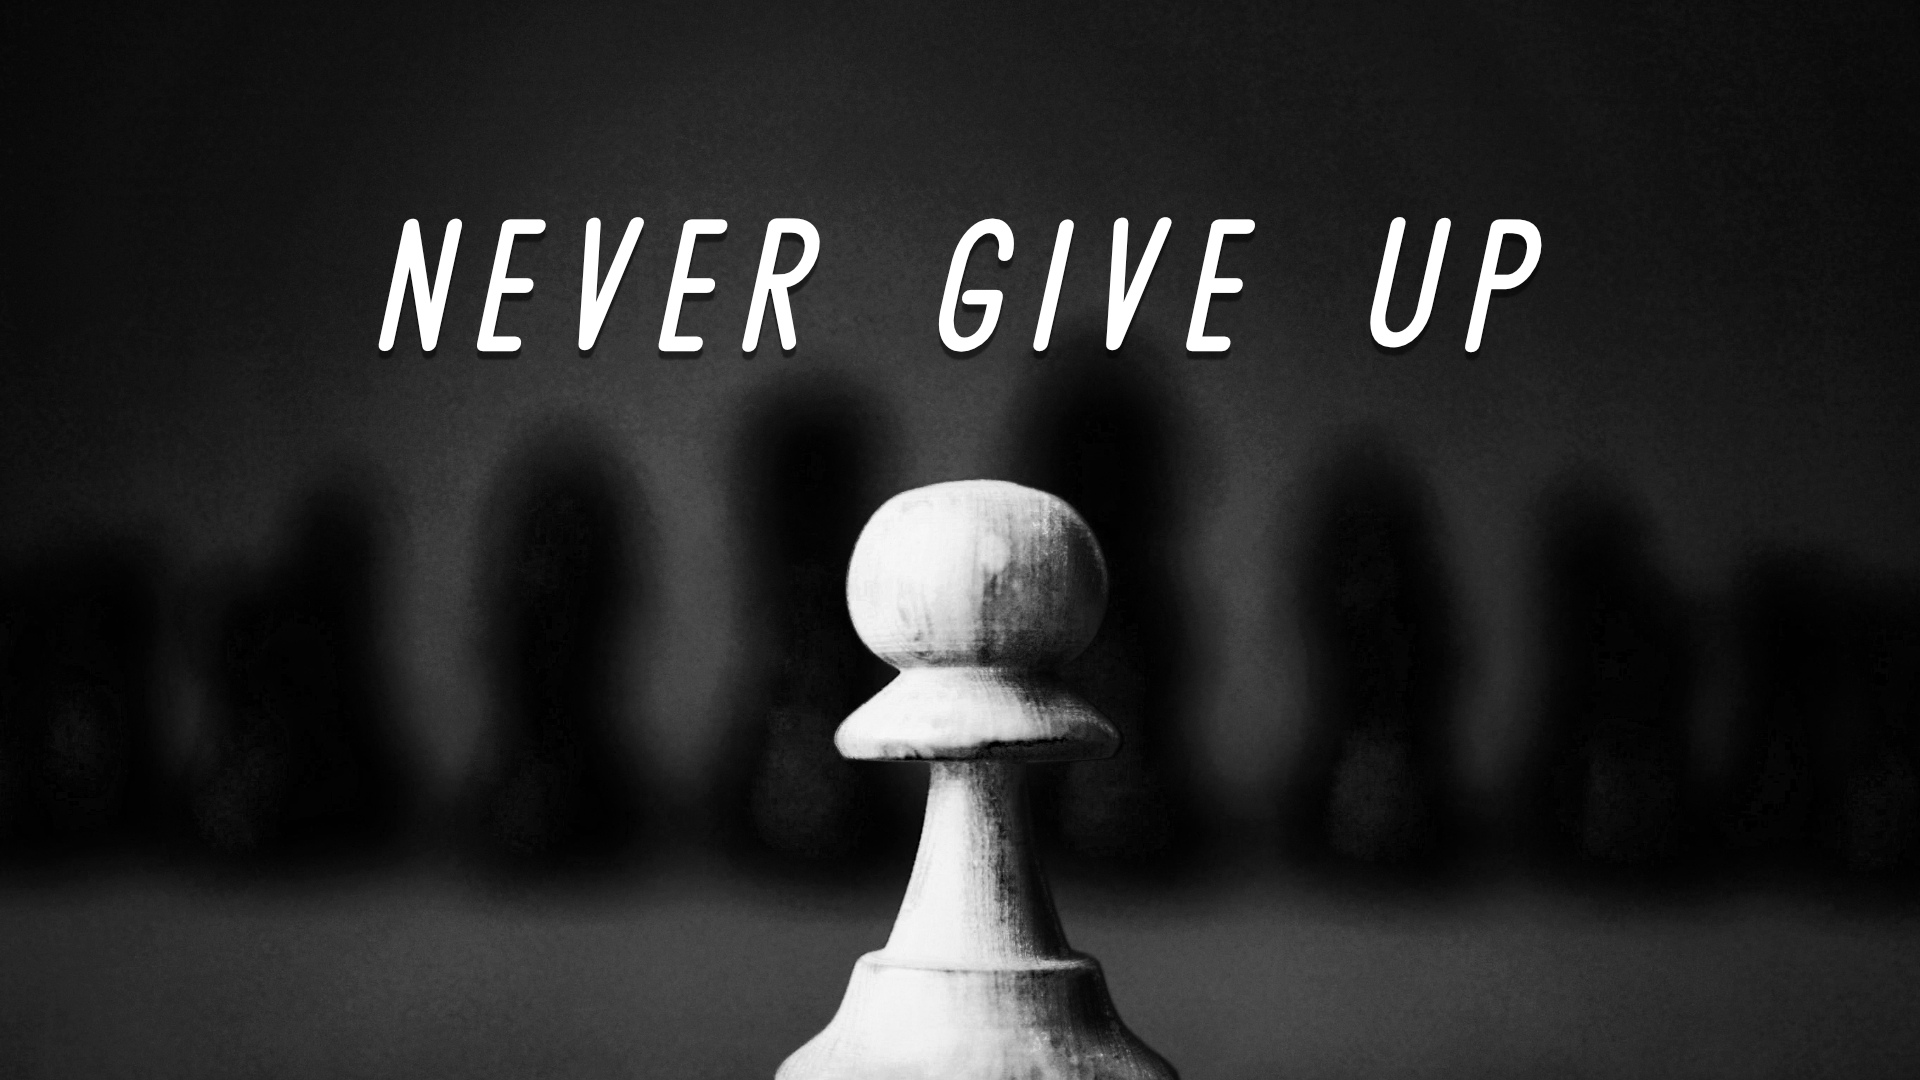 2019-03-17 Never Give Up.jpg